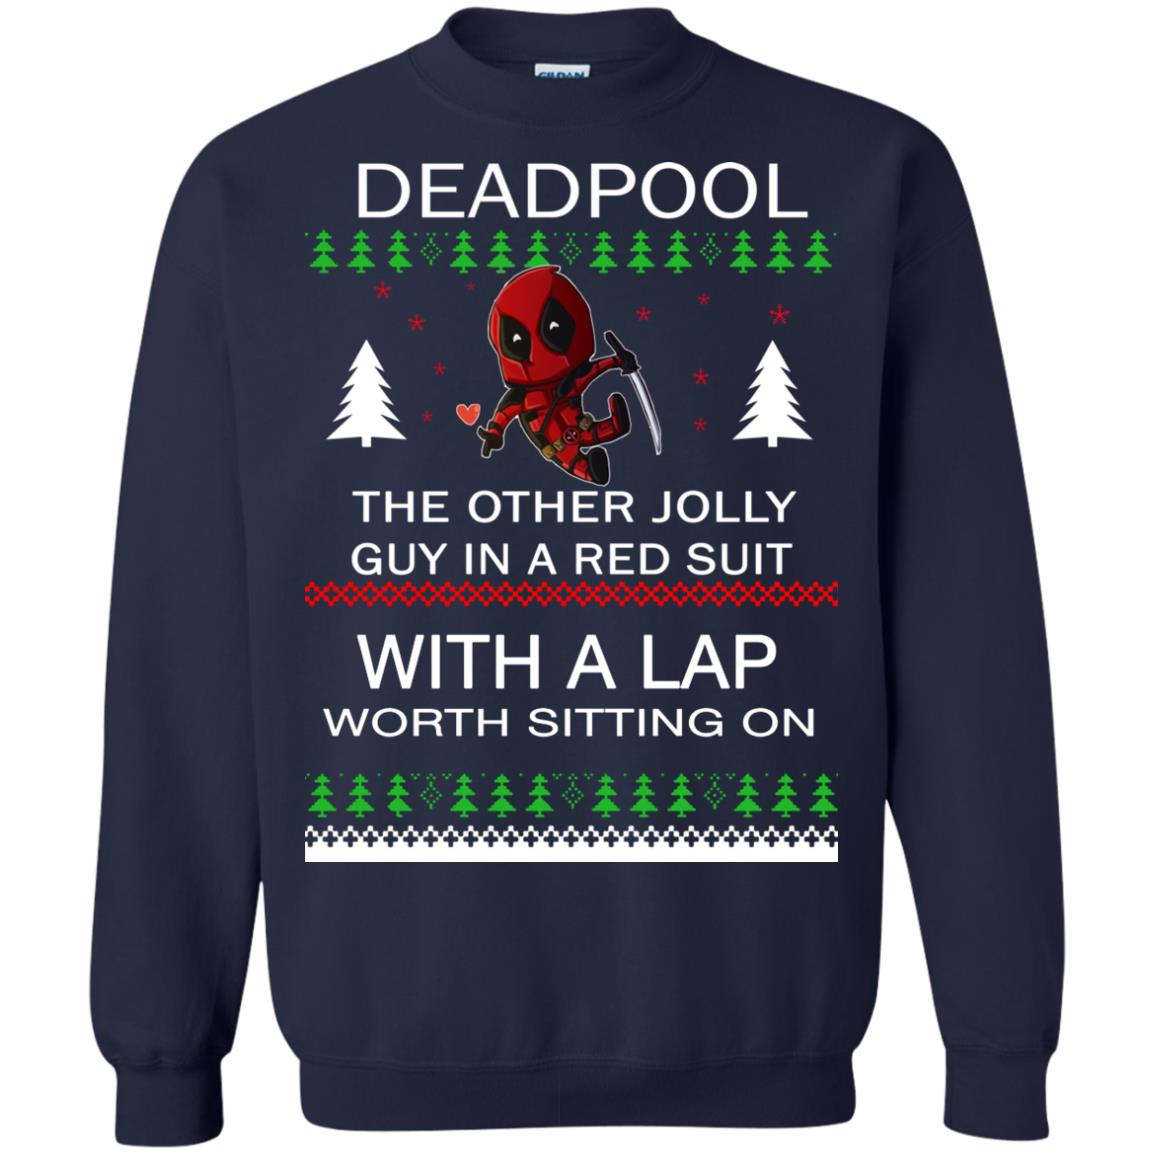 image 2836 - Deadpool The only jolly guy in a red suit with a Lap Christmas Sweater, Ugly Sweatshirts